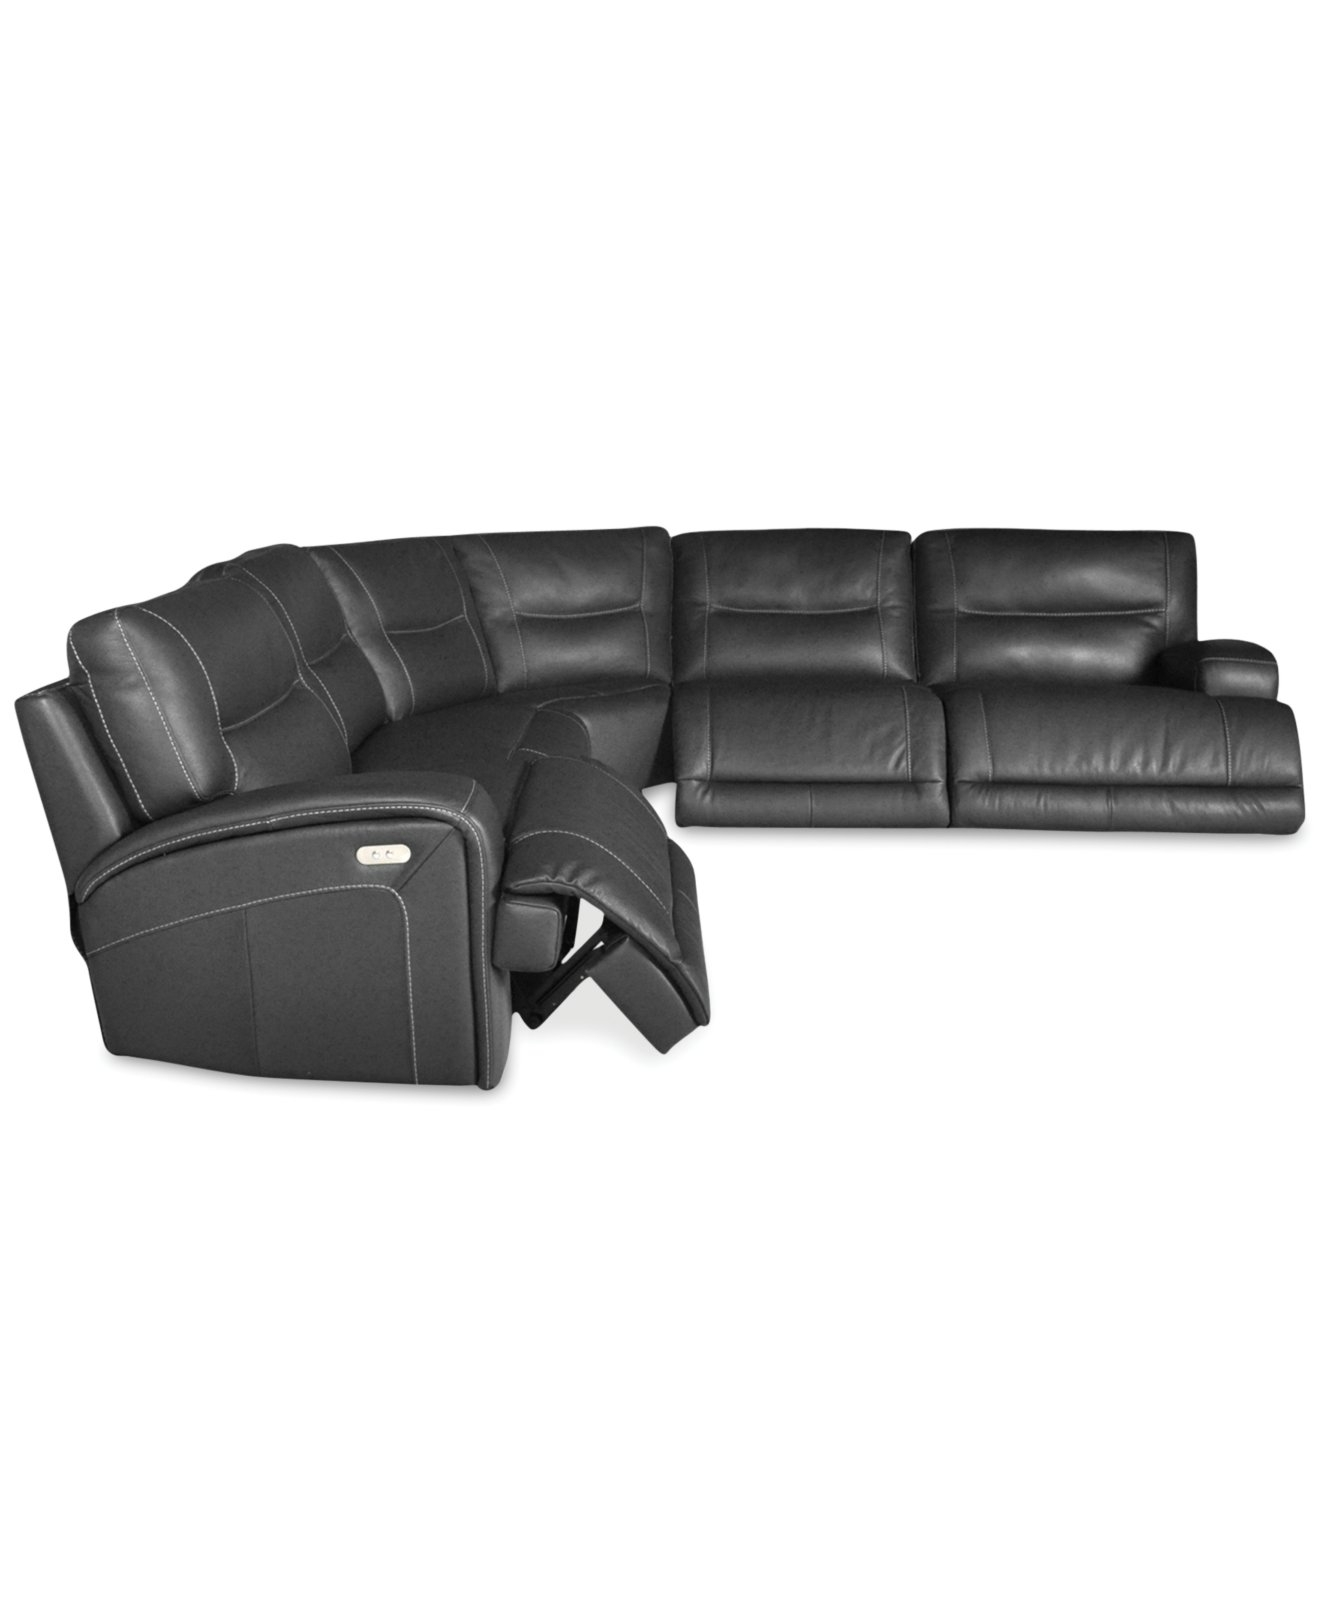 Caruso Leather 6 Piece Power Motion Chaise Sectional Sofa Den Regarding 6 Piece Leather Sectional Sofa (Image 3 of 15)